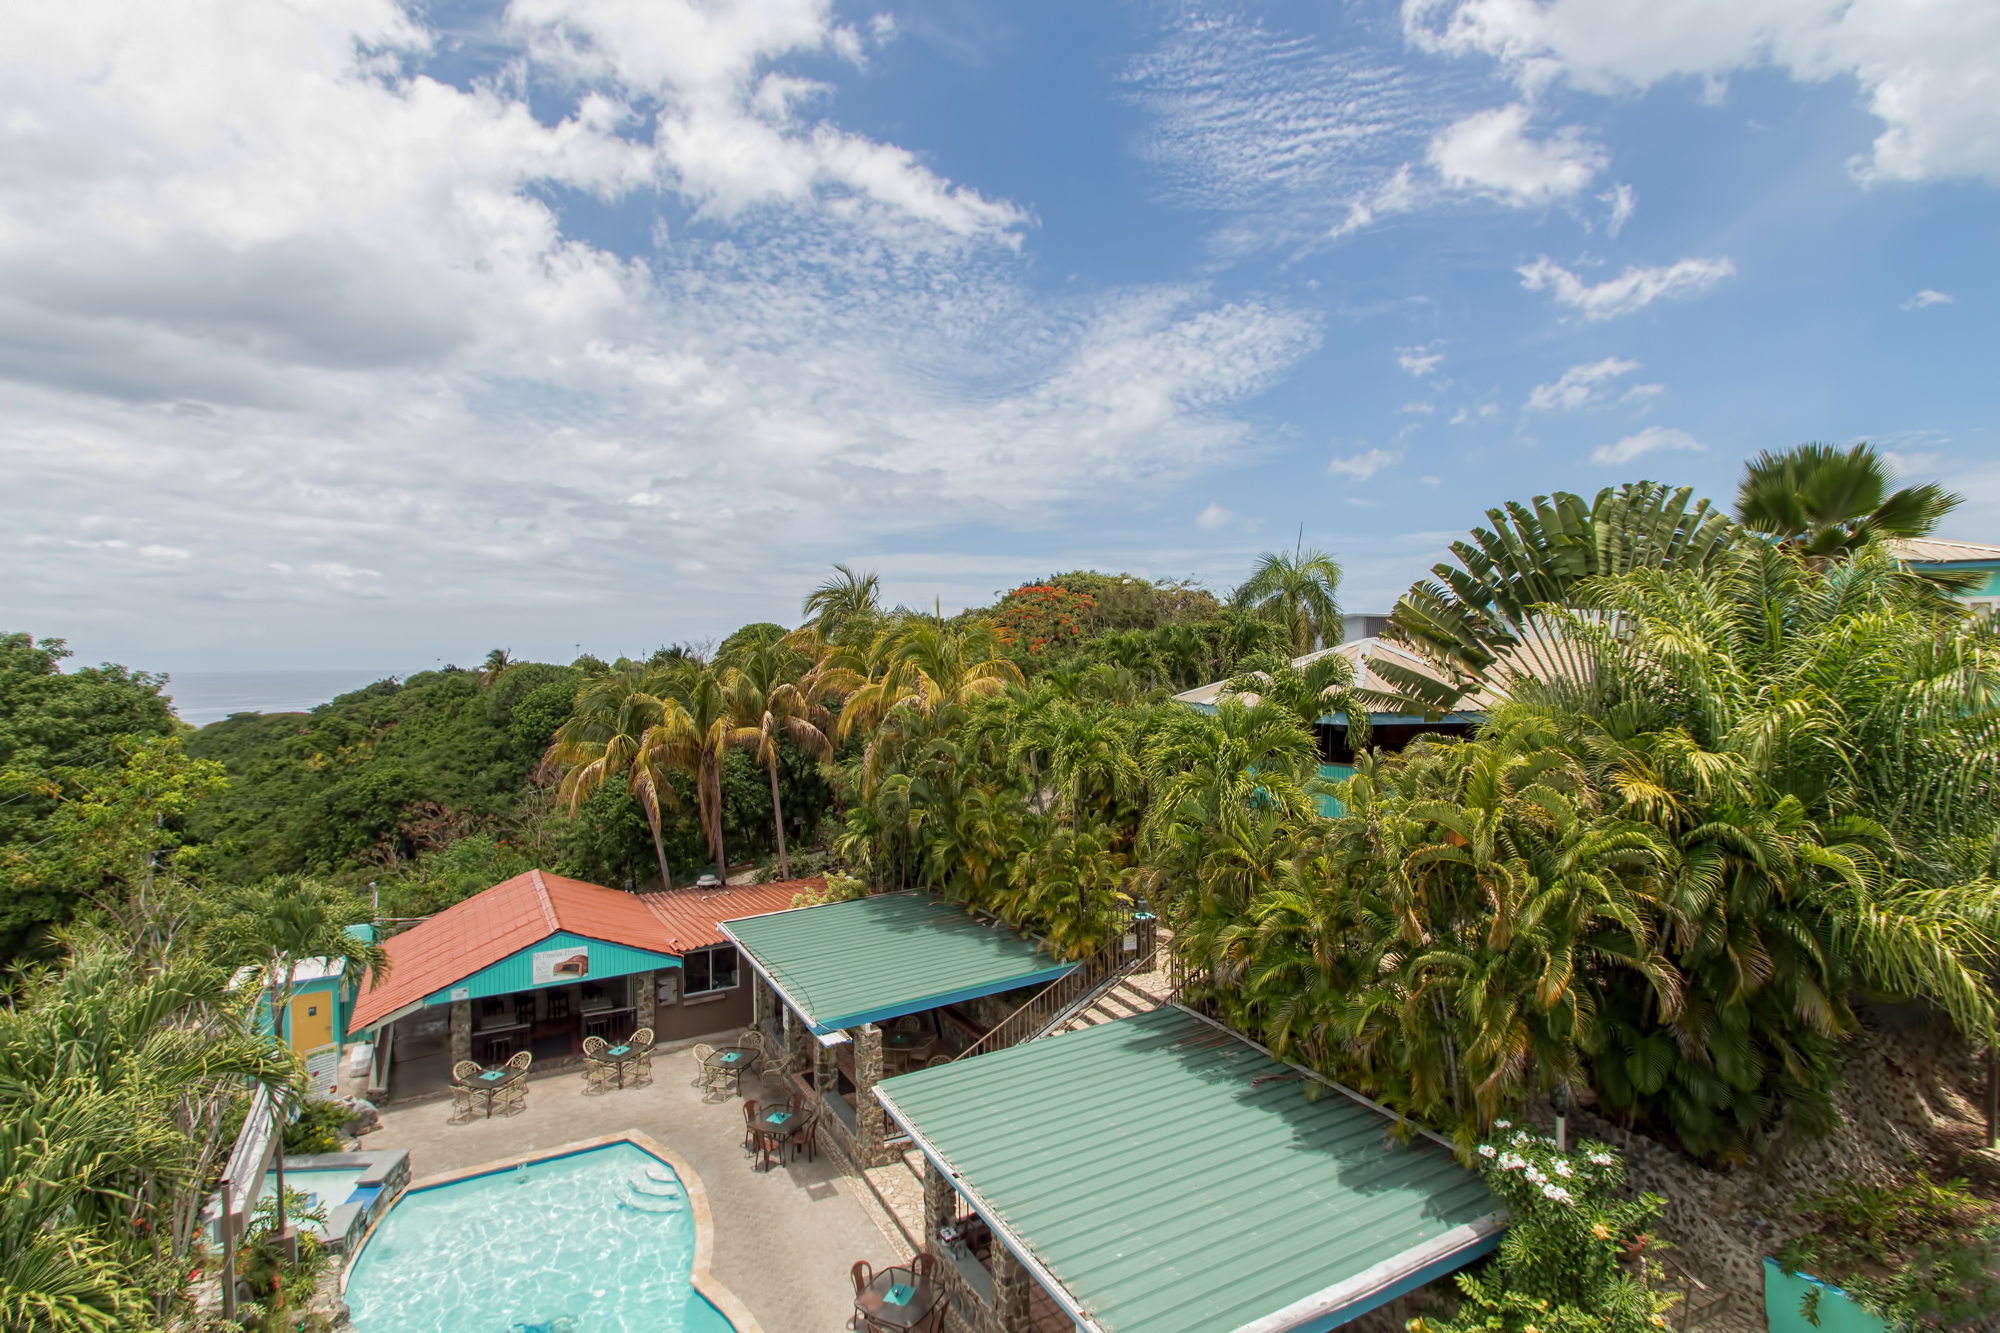 The Lazy Parrot Inn › Real Estate in Rincon, Puerto Rico